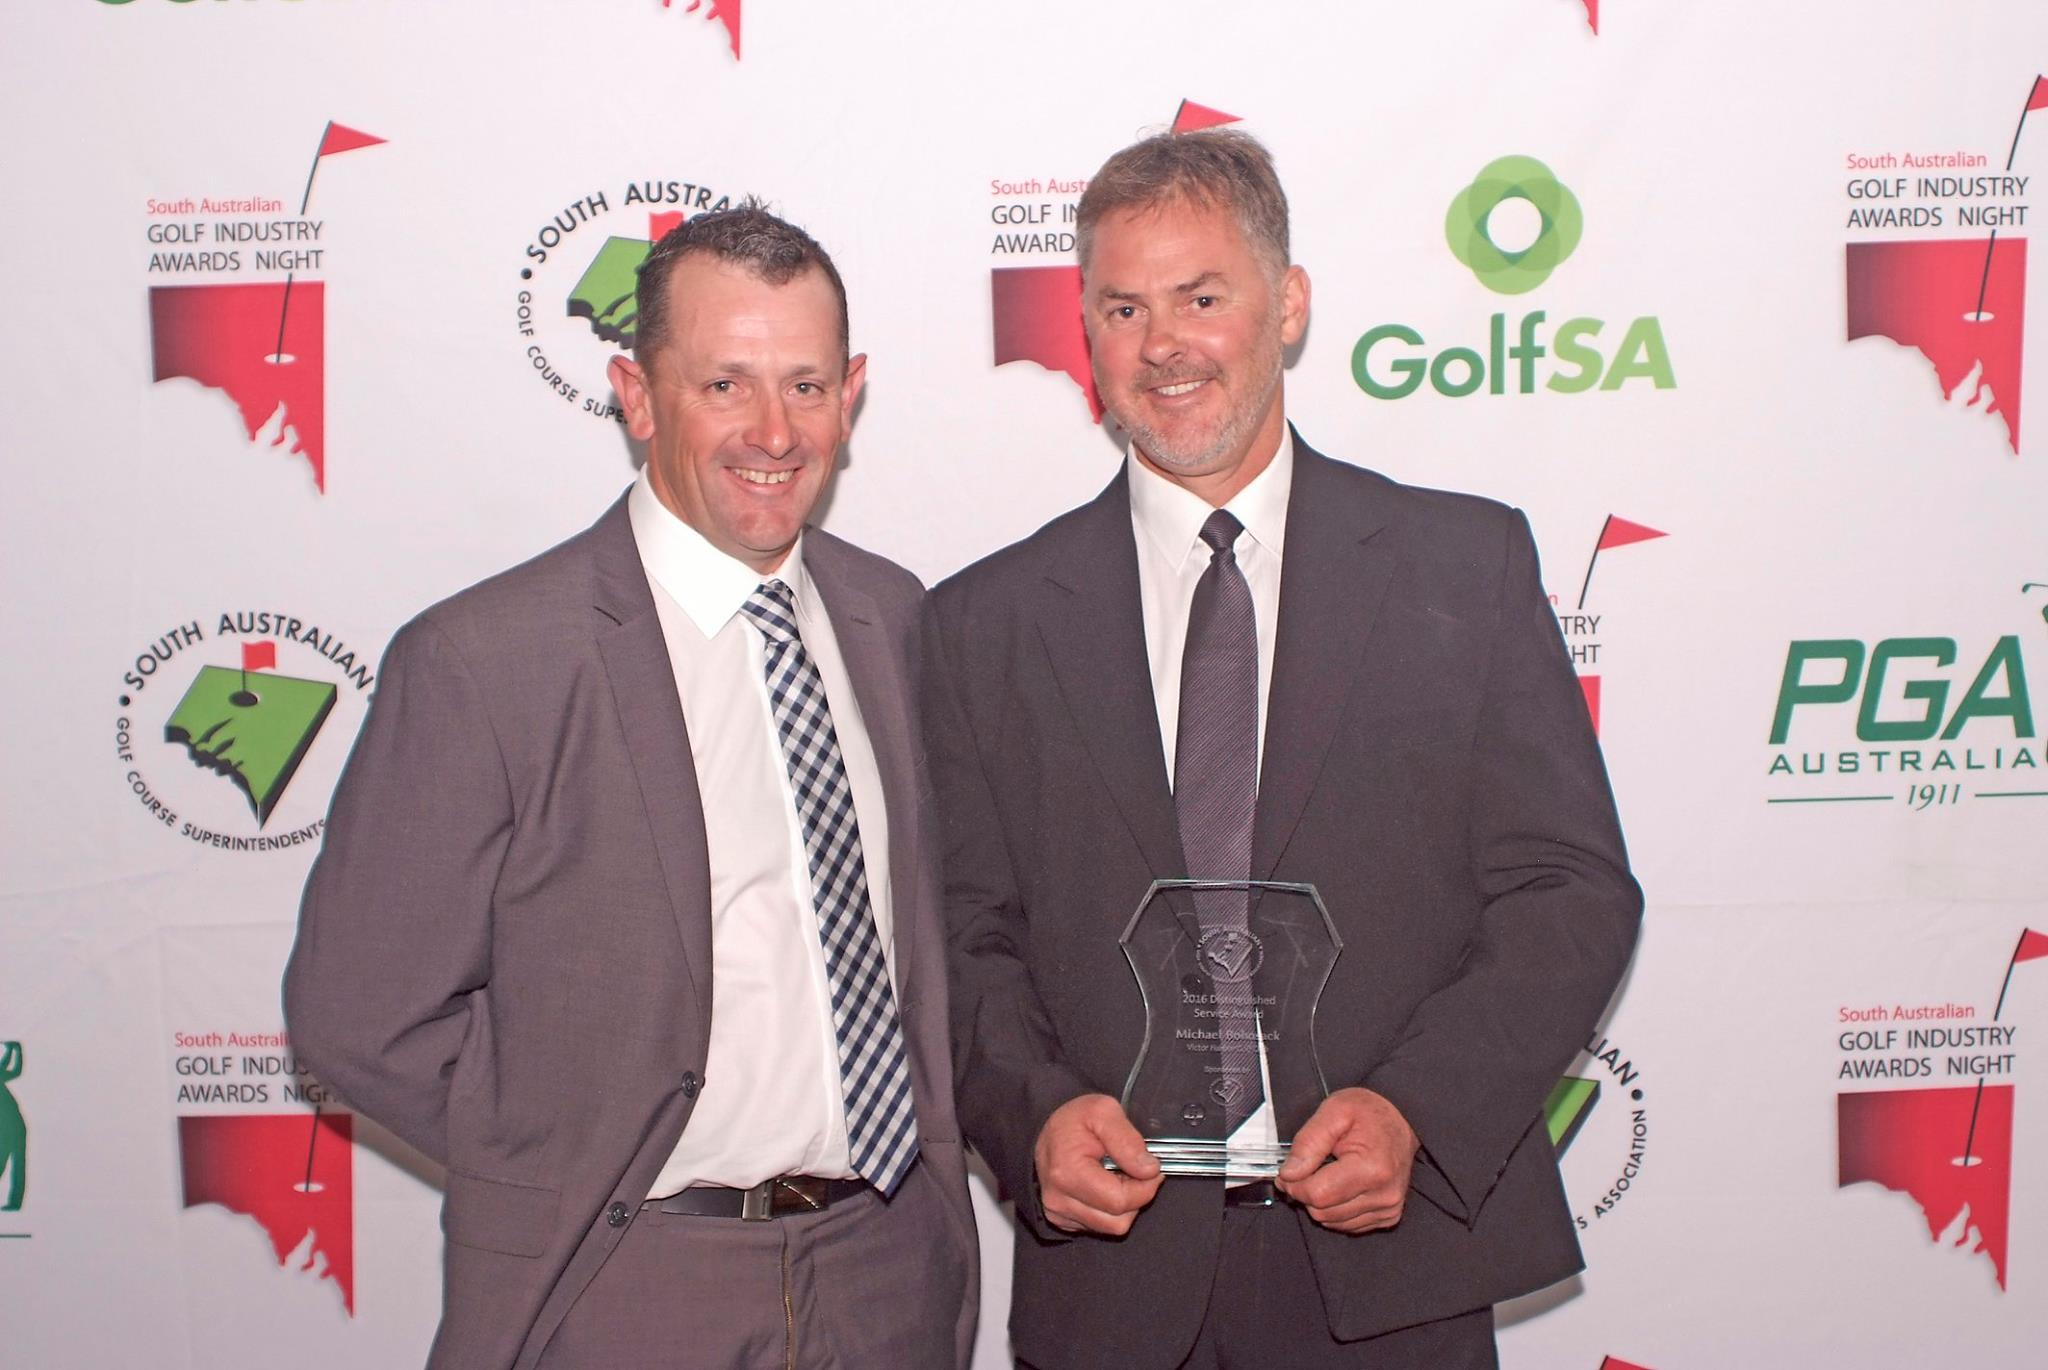 SA Golf Industry Awards Night (2).jpg